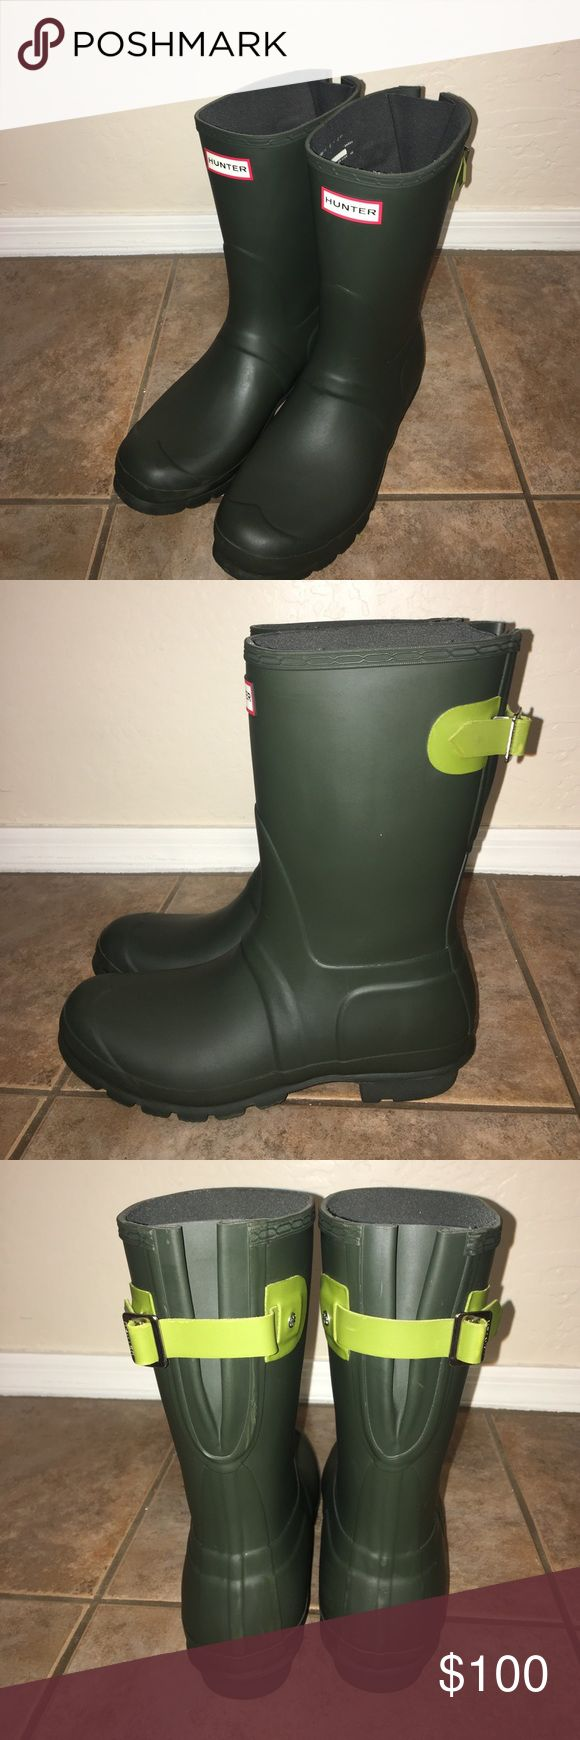 Hunter Short Adjustable Back Boot Wellies sz 9 No Trades, No Box, Freshly Cleaned, Shows some wear around Boot and on bottom soles Hunter Boots Shoes Winter & Rain Boots